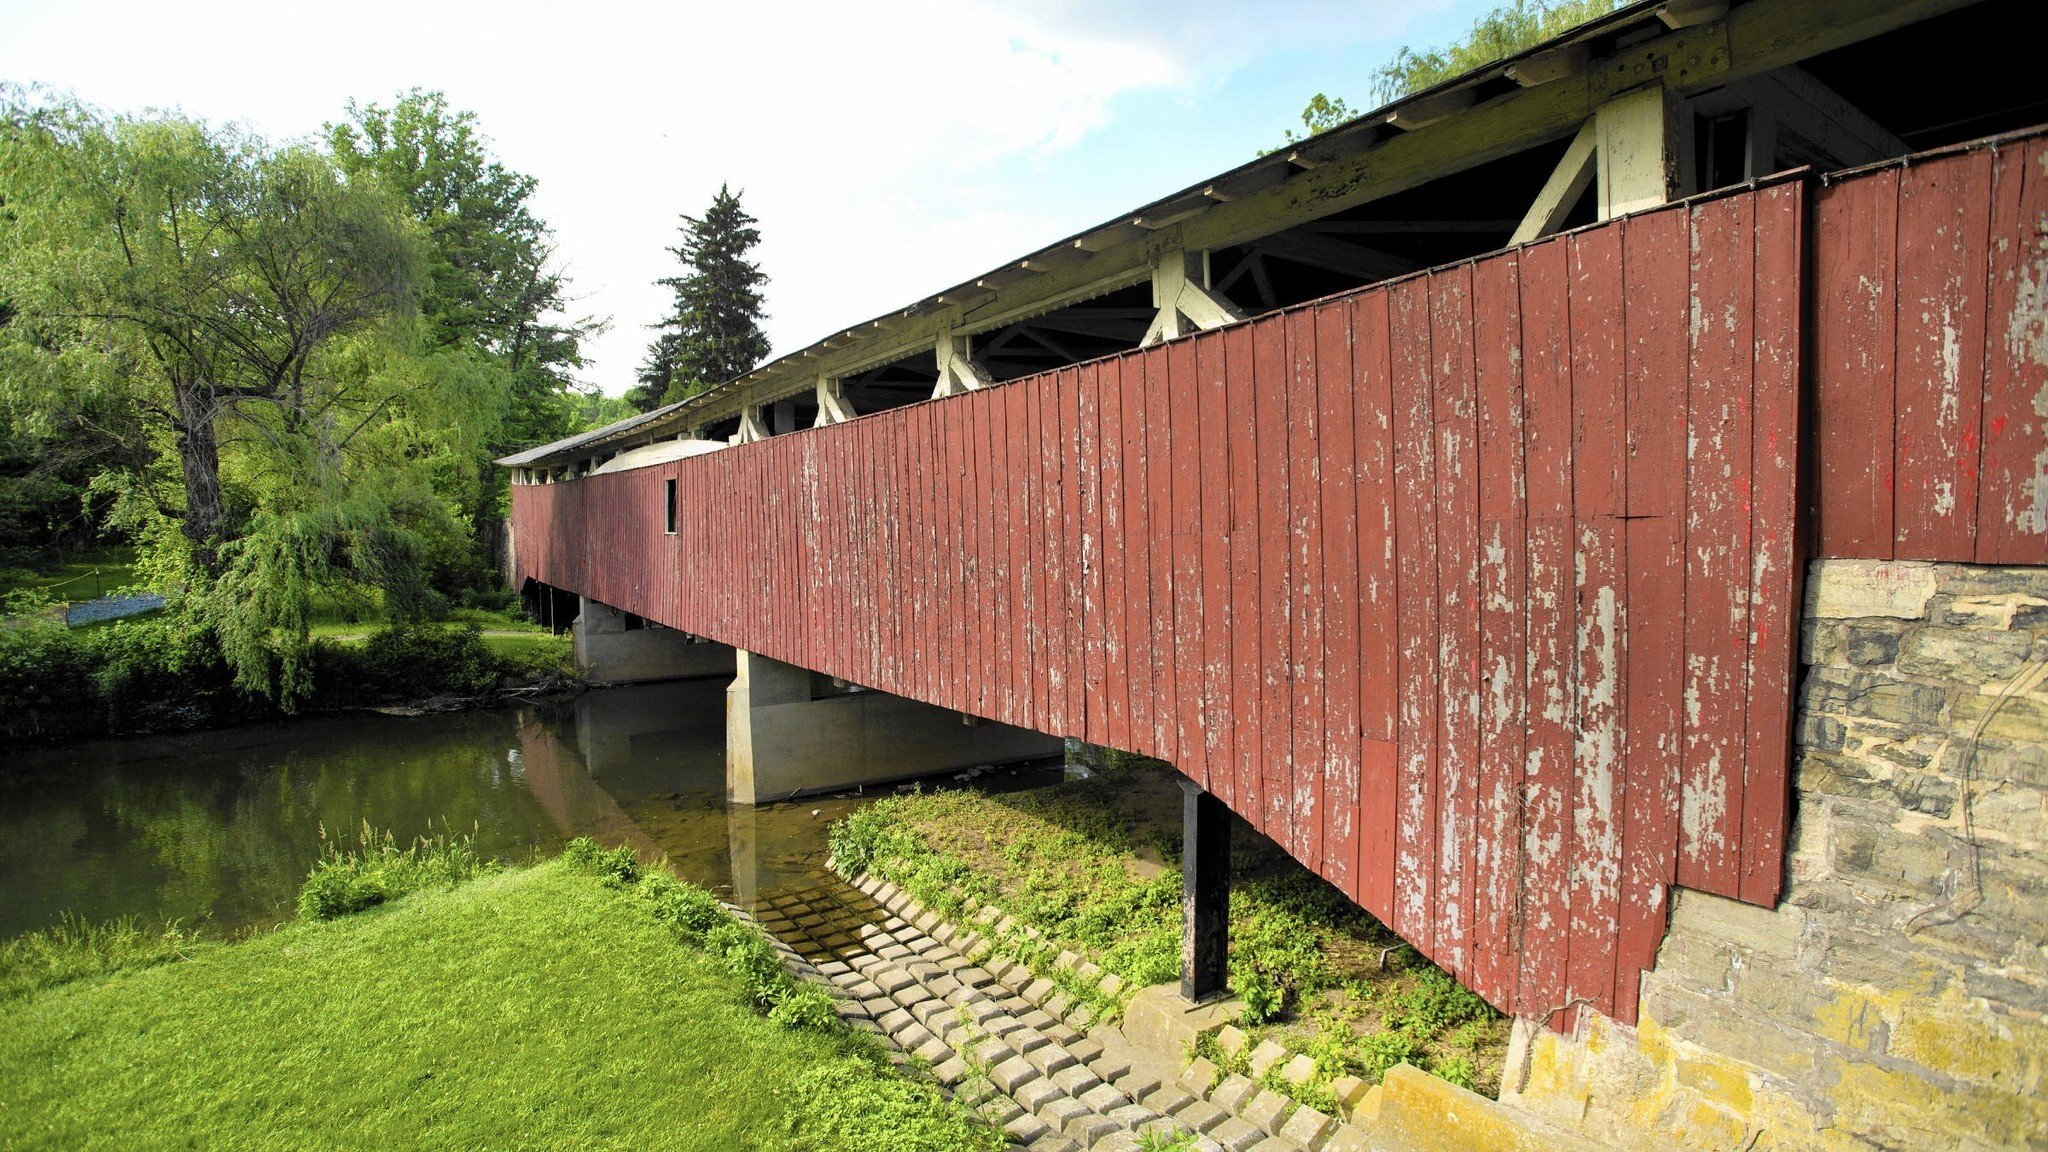 The covered bridge needs more than just the superficial renovations evident in this photo.